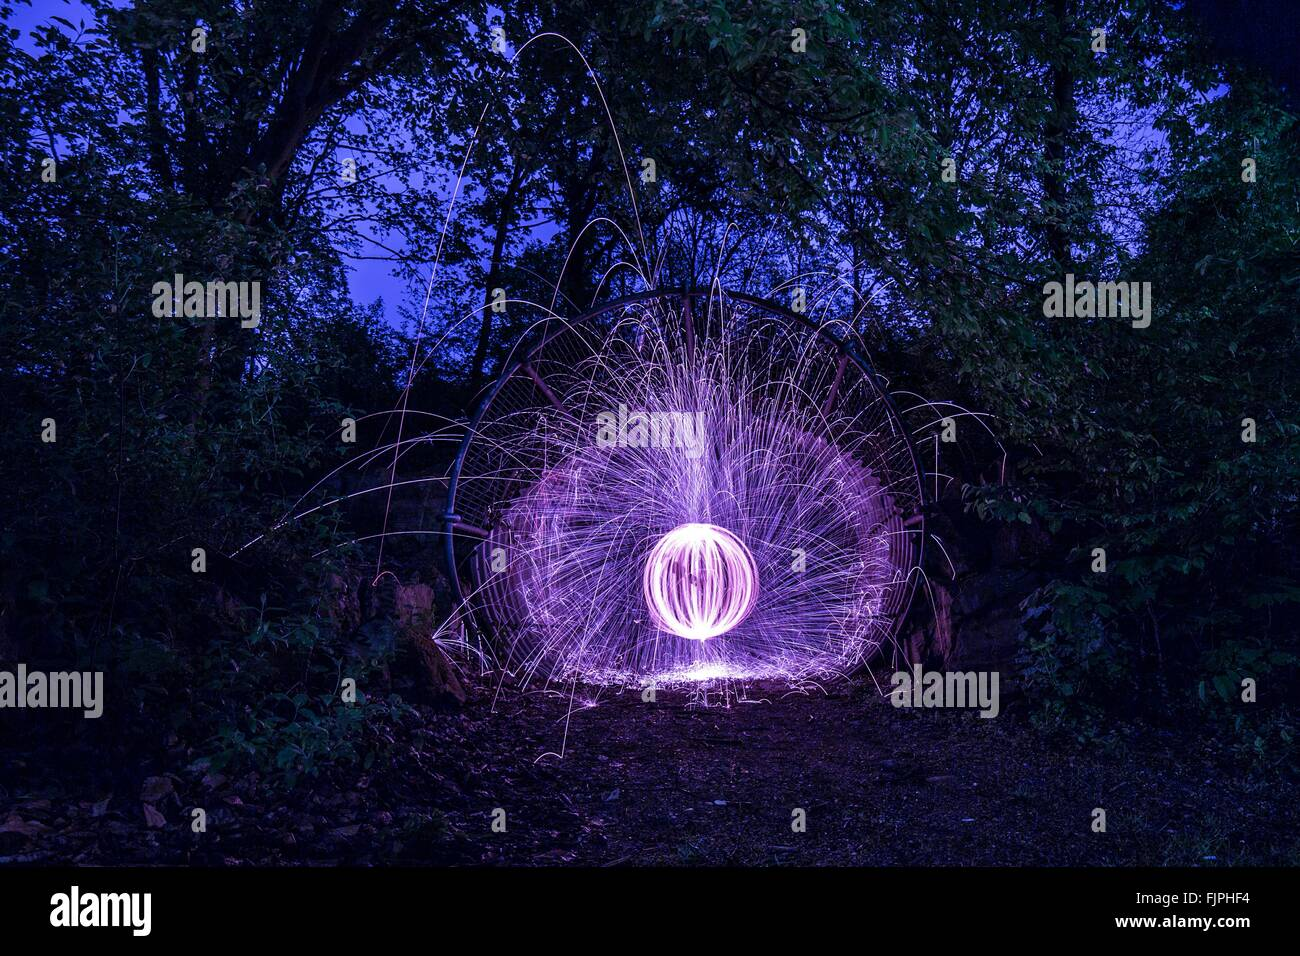 Ring Of Blue Fire At Night - Stock Image